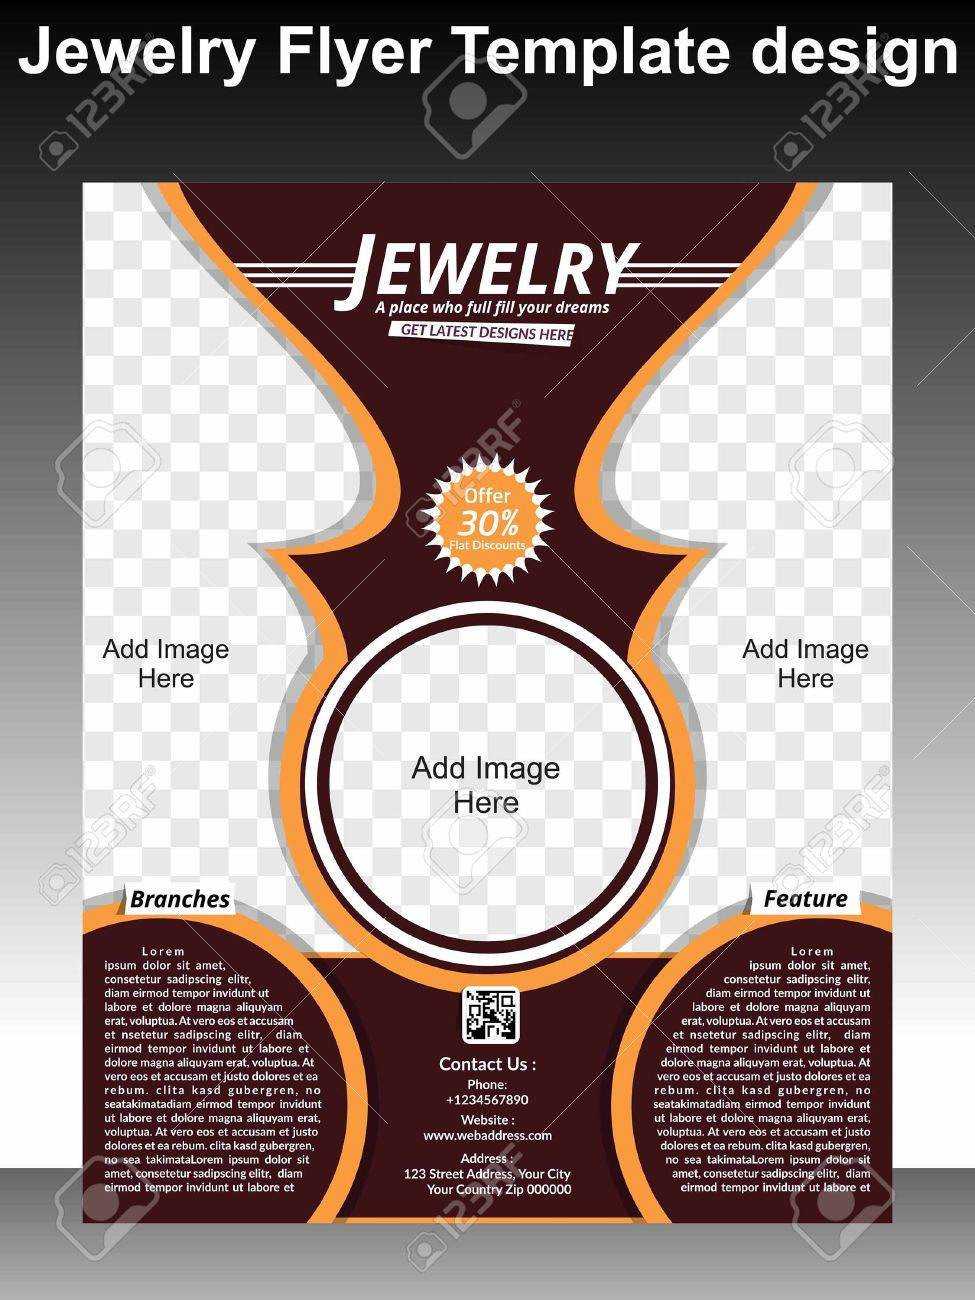 Jewelry Flyer Template Design Vector Illustration Royalty Free ...